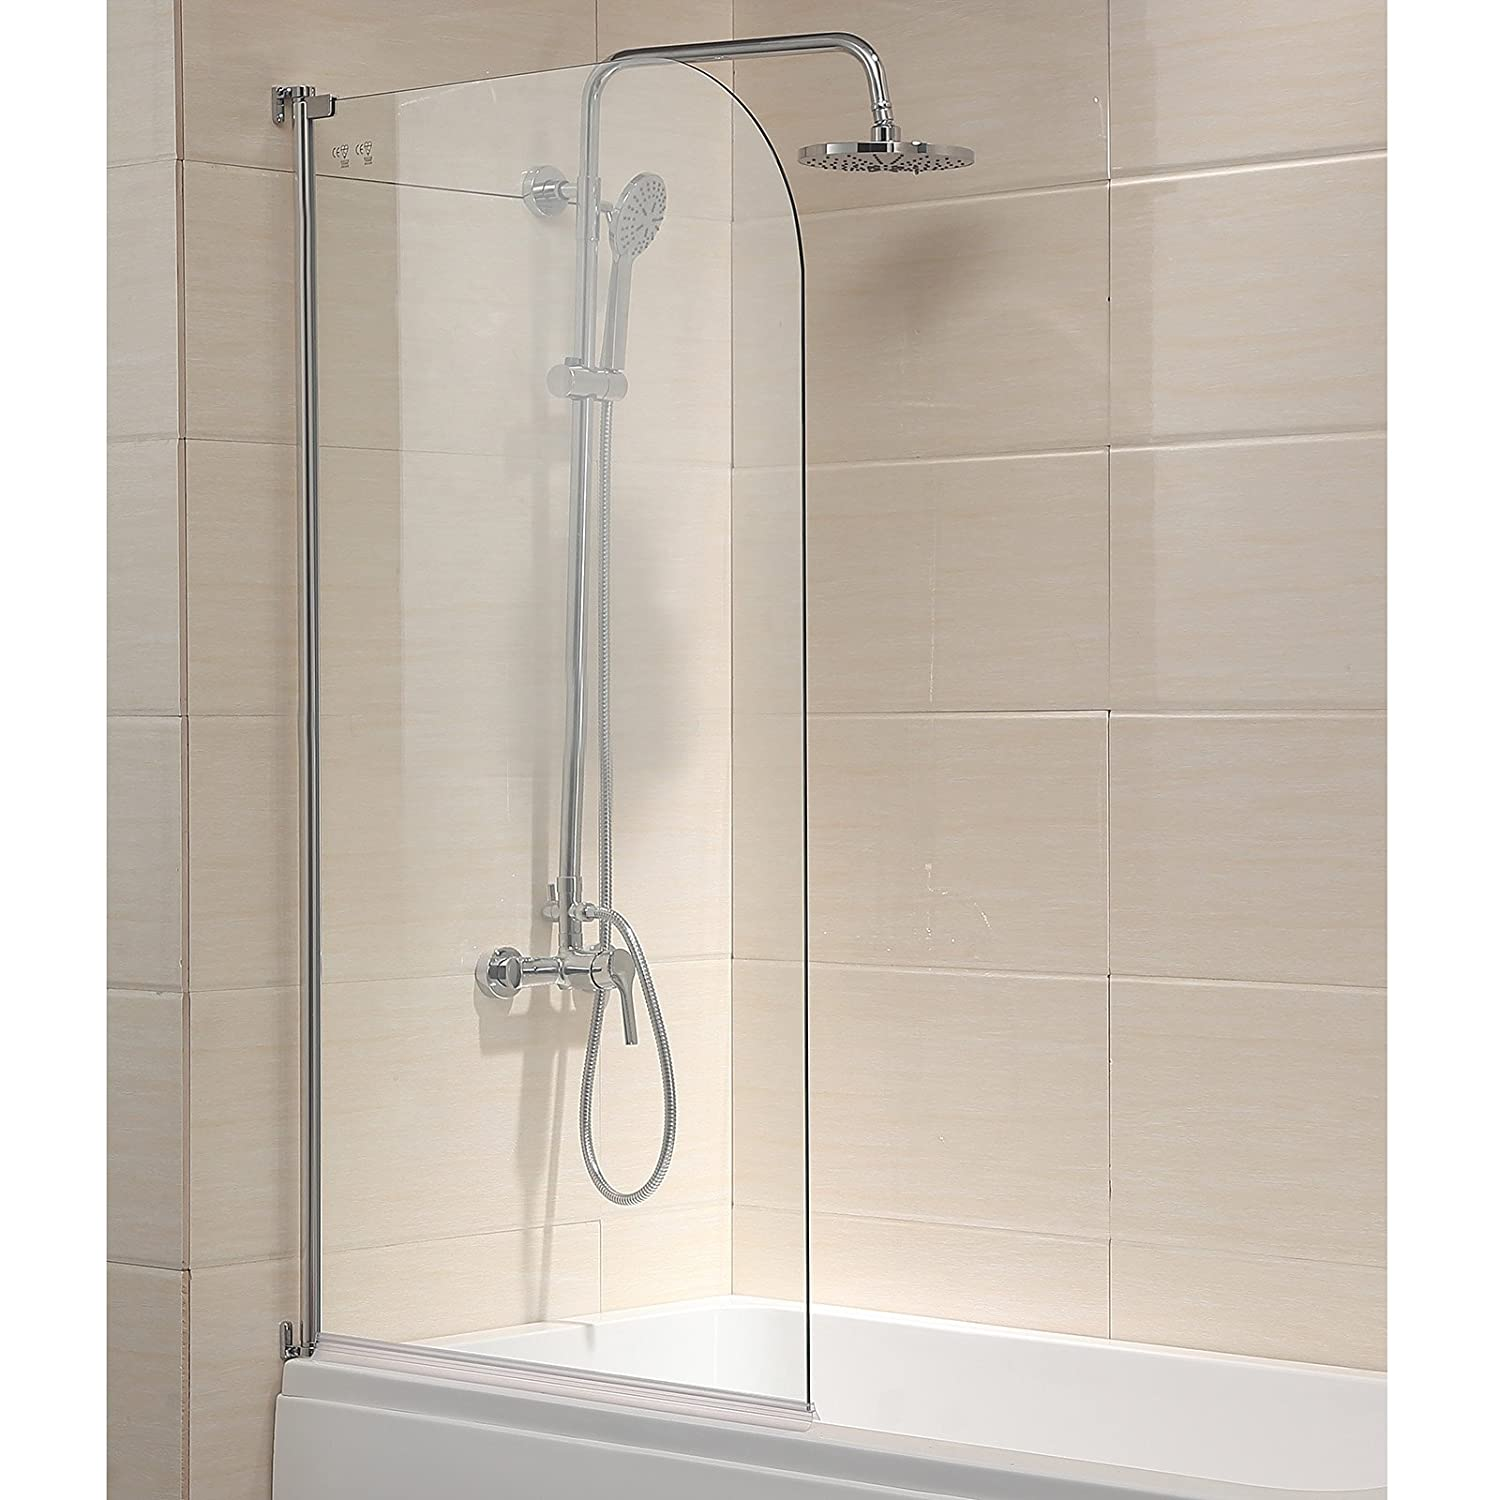 Mecor 55 X31 Bathtub Shower Door 1 4 Clear Glass Hinged Pivot